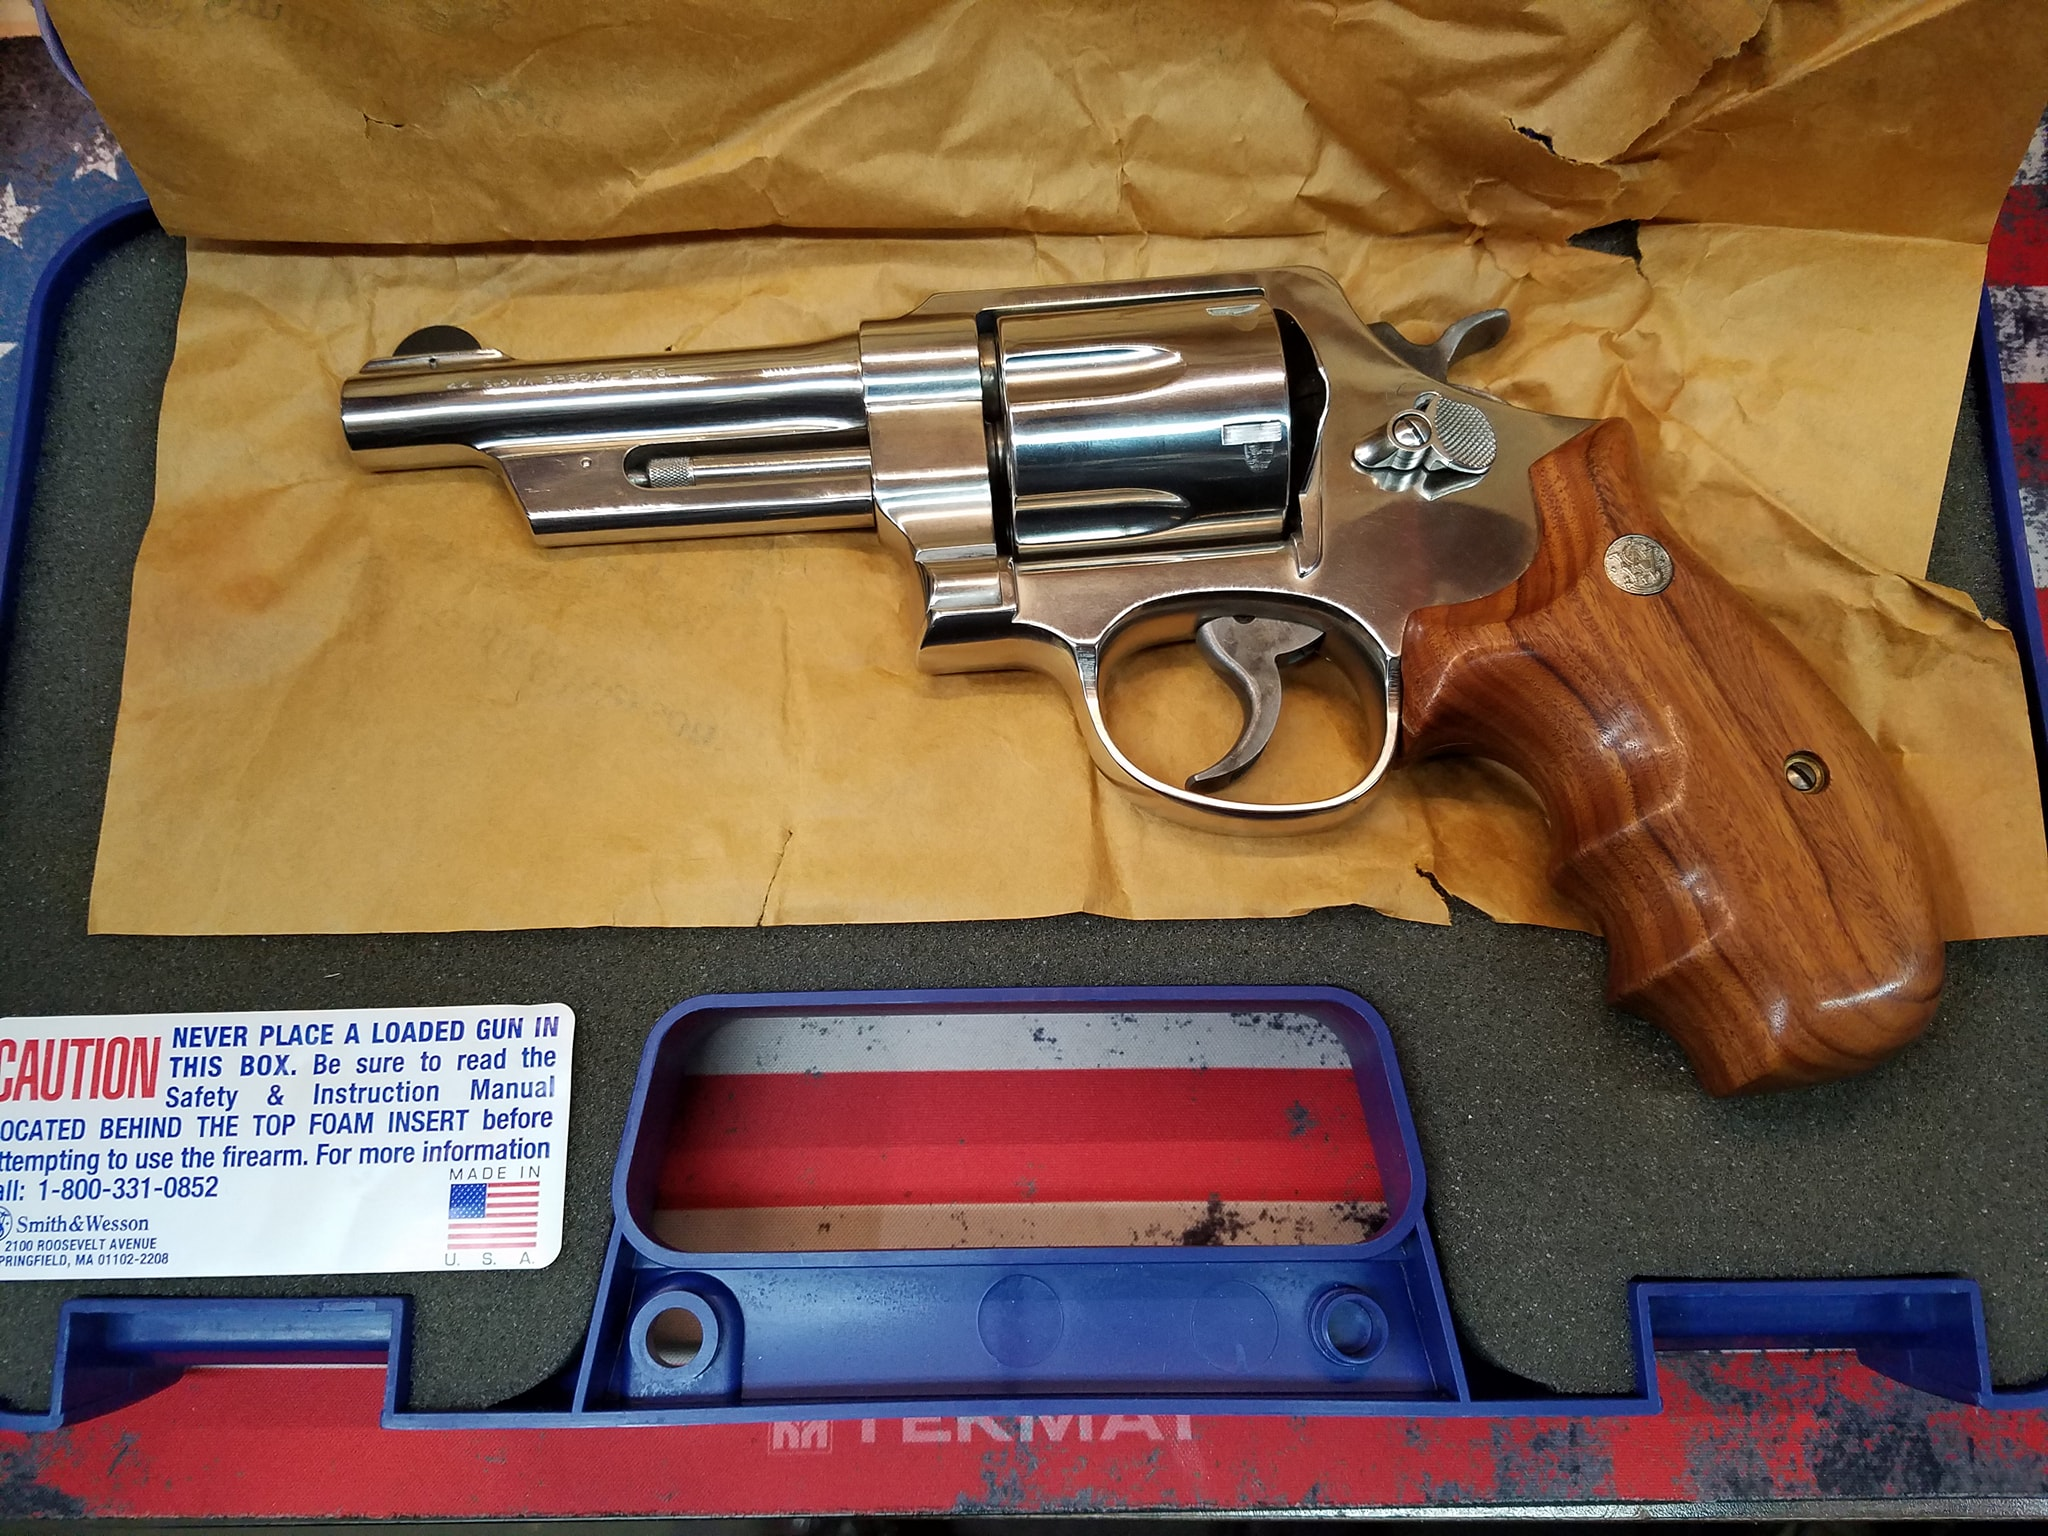 Smith & Wesson 21-4 44spl Nickel